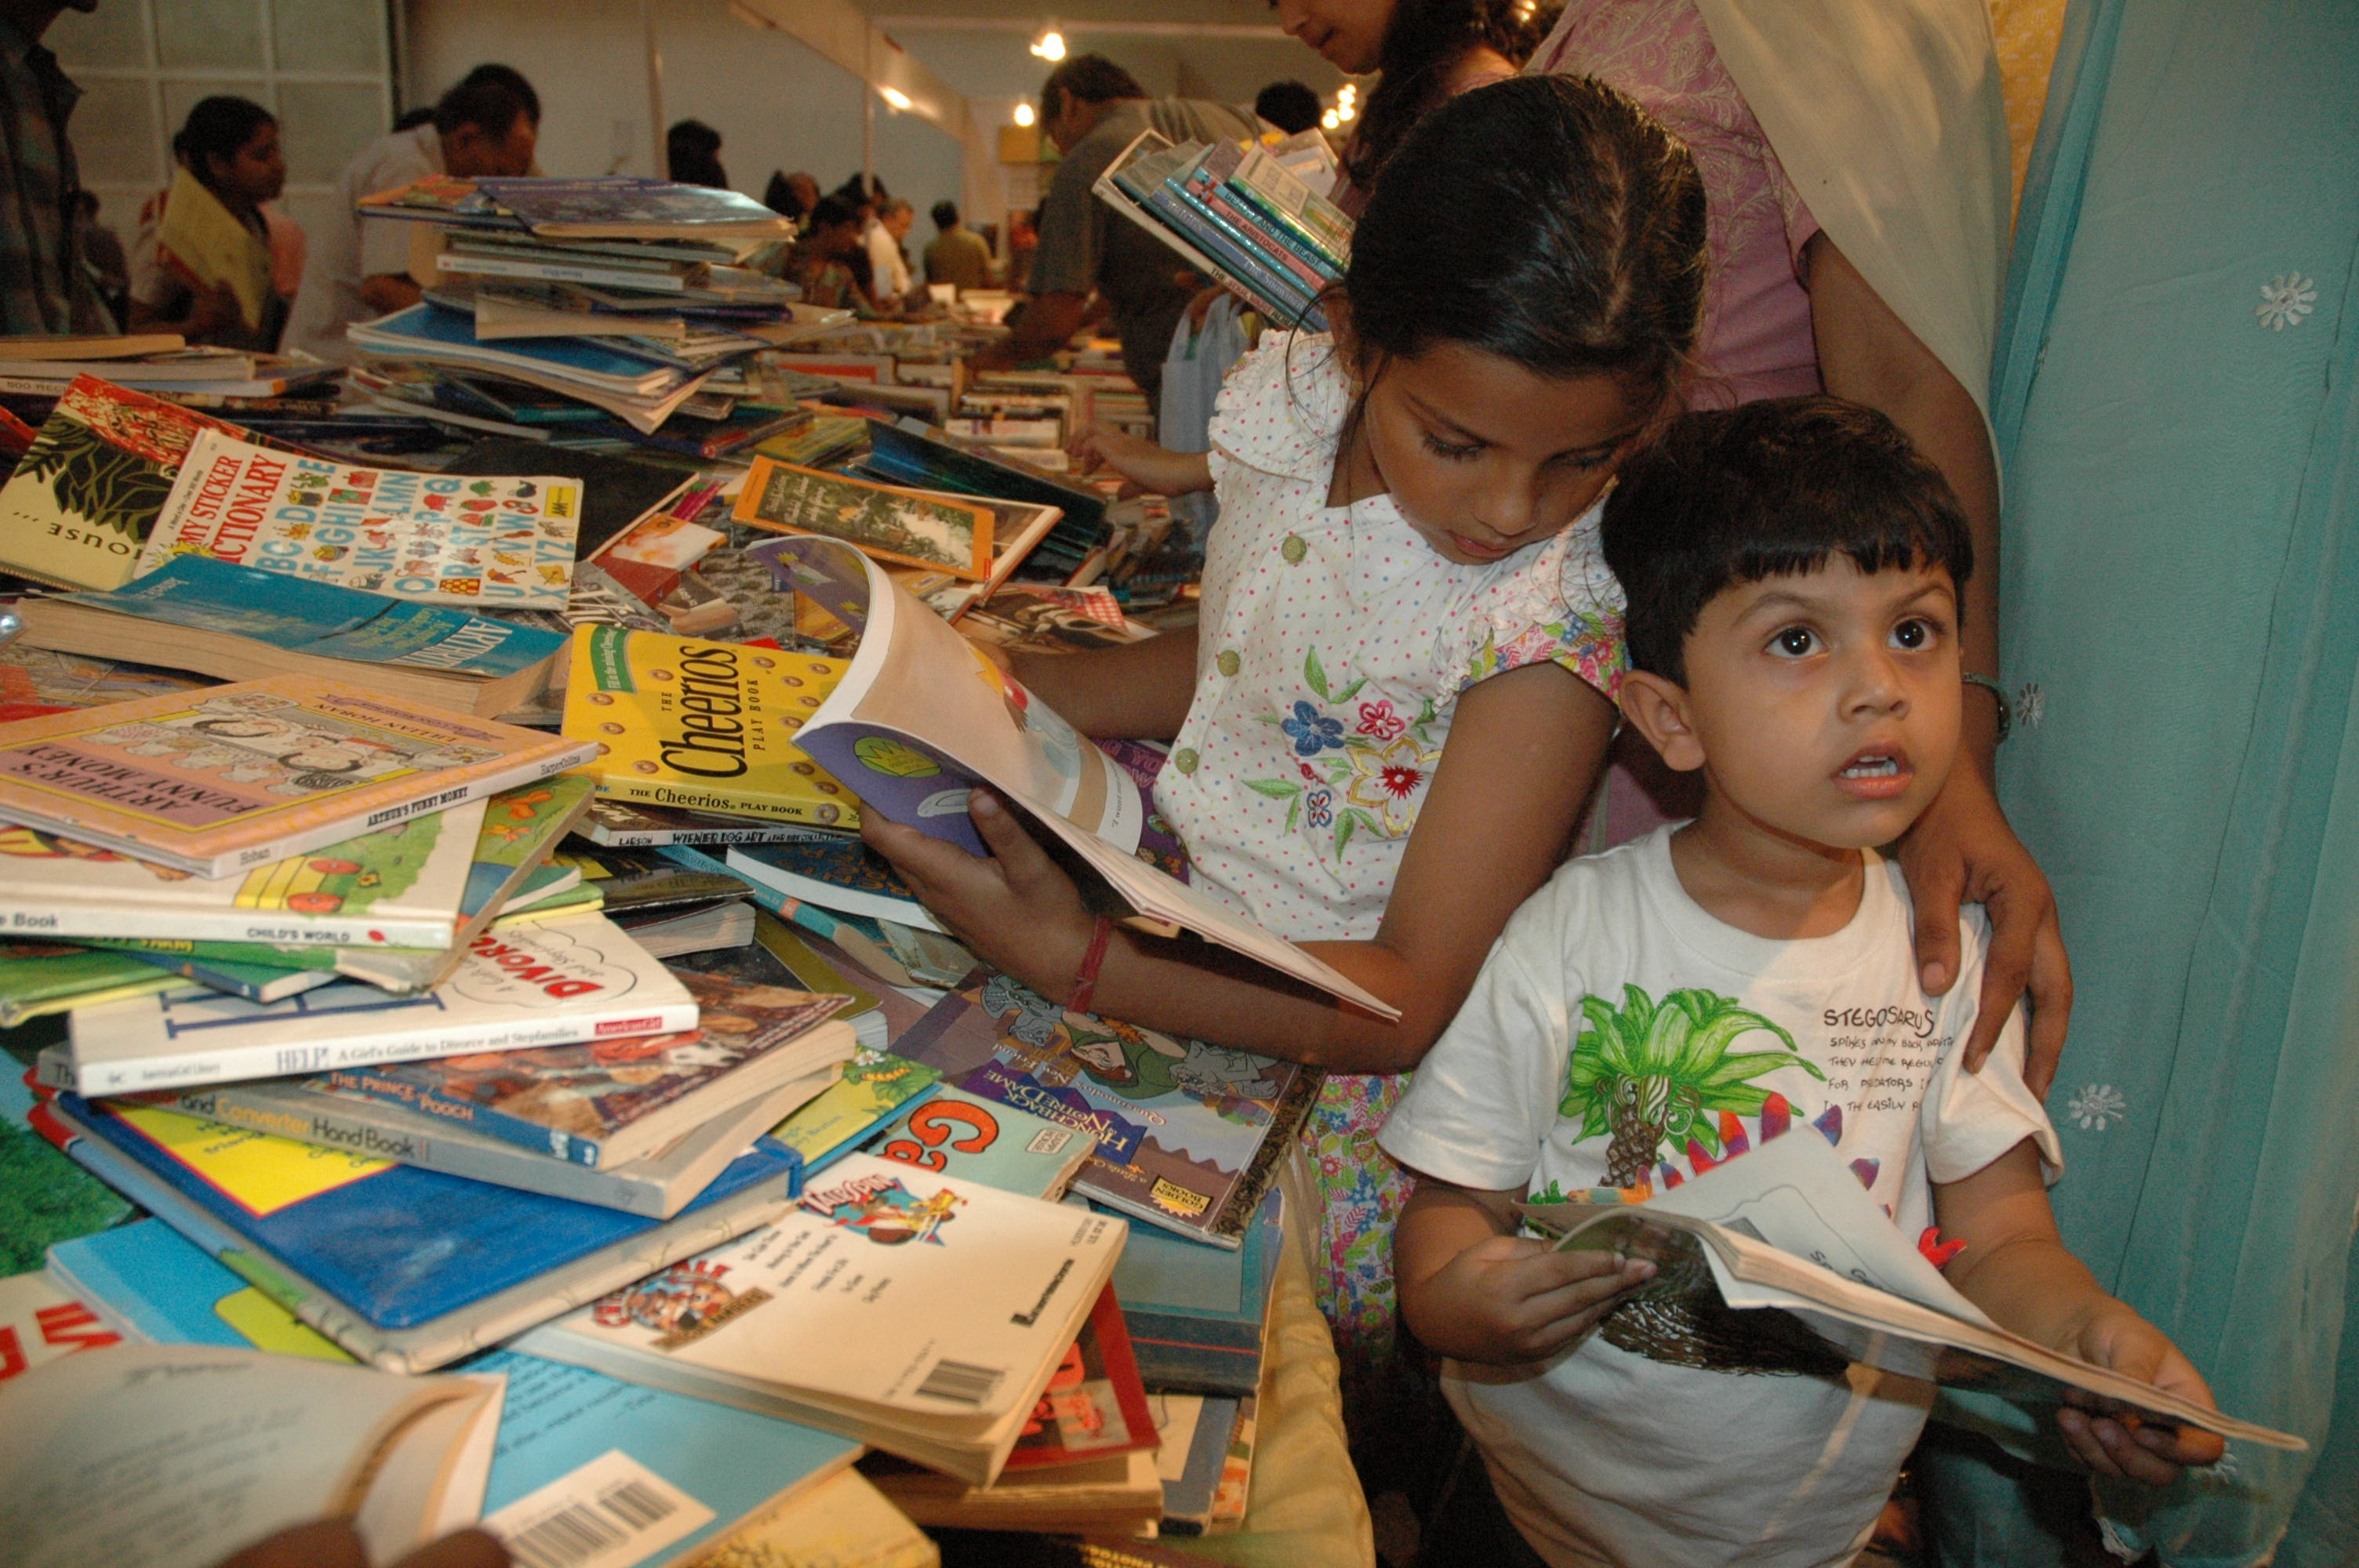 Books are the best bet to know the world and stoke imagination, world book fair, Delhi